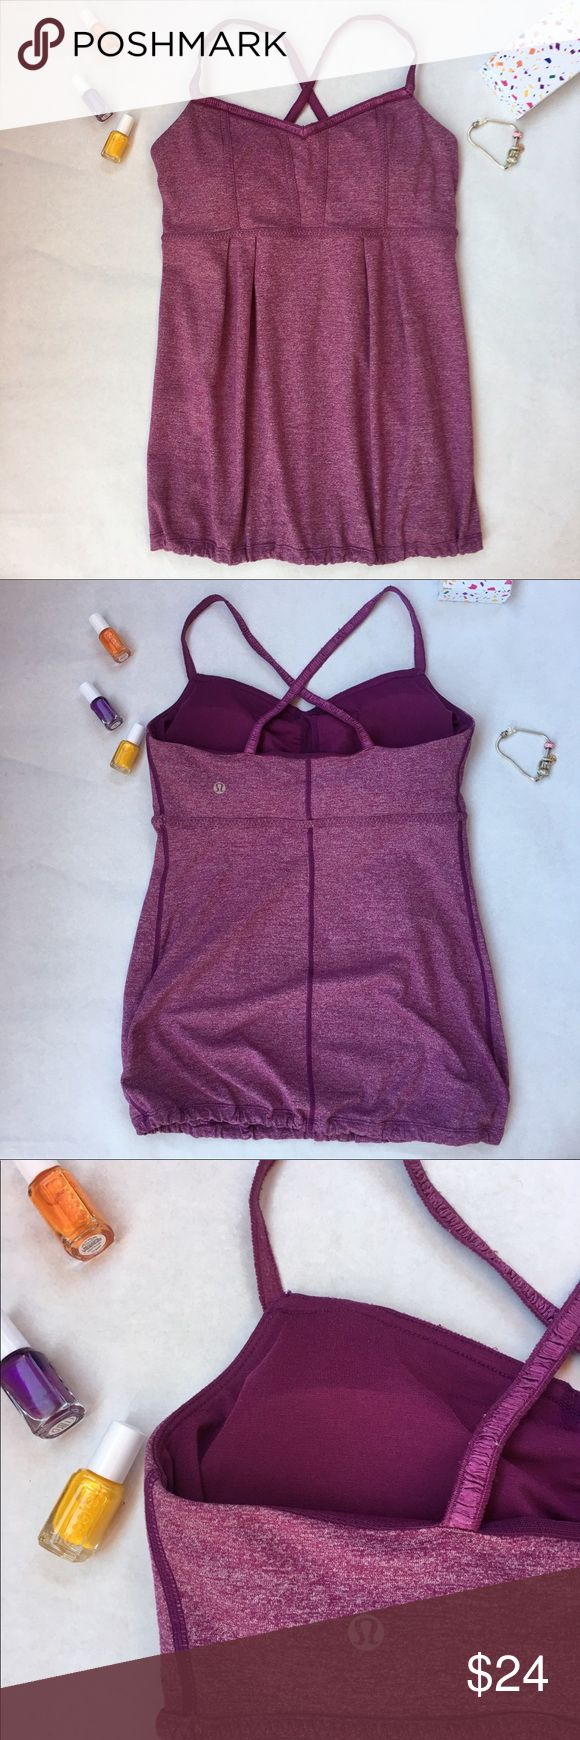 LULULEMON purple tank top 8 Super cute with flattering fit. Crisscross straps and drawstring at hem. Only sign of wear is on the inner portion, where there is some light piling on the inside of the straps and bra. (Can't tell when wearing.) Removable padding in built-in bra. lululemon athletica Tops Tank Tops